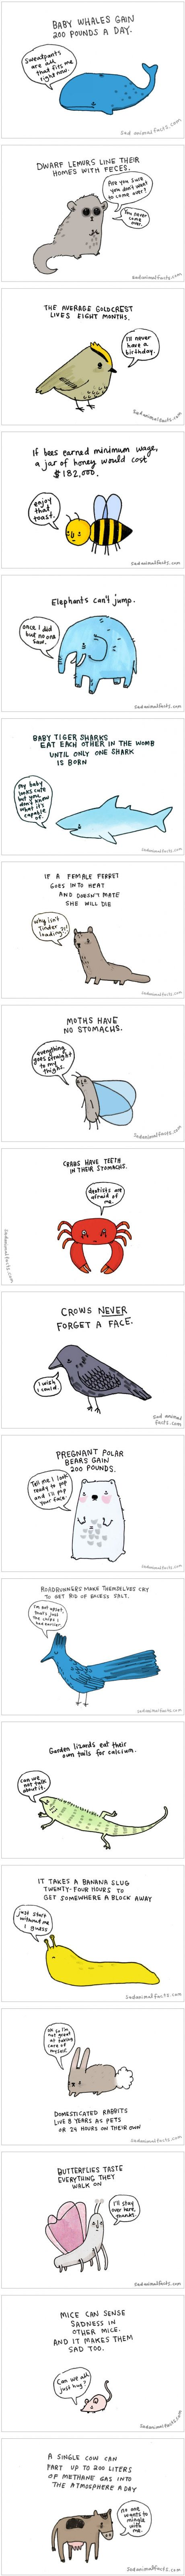 Sad Animal Facts (by Brooke Barker)                                                                                                                                                                                 More